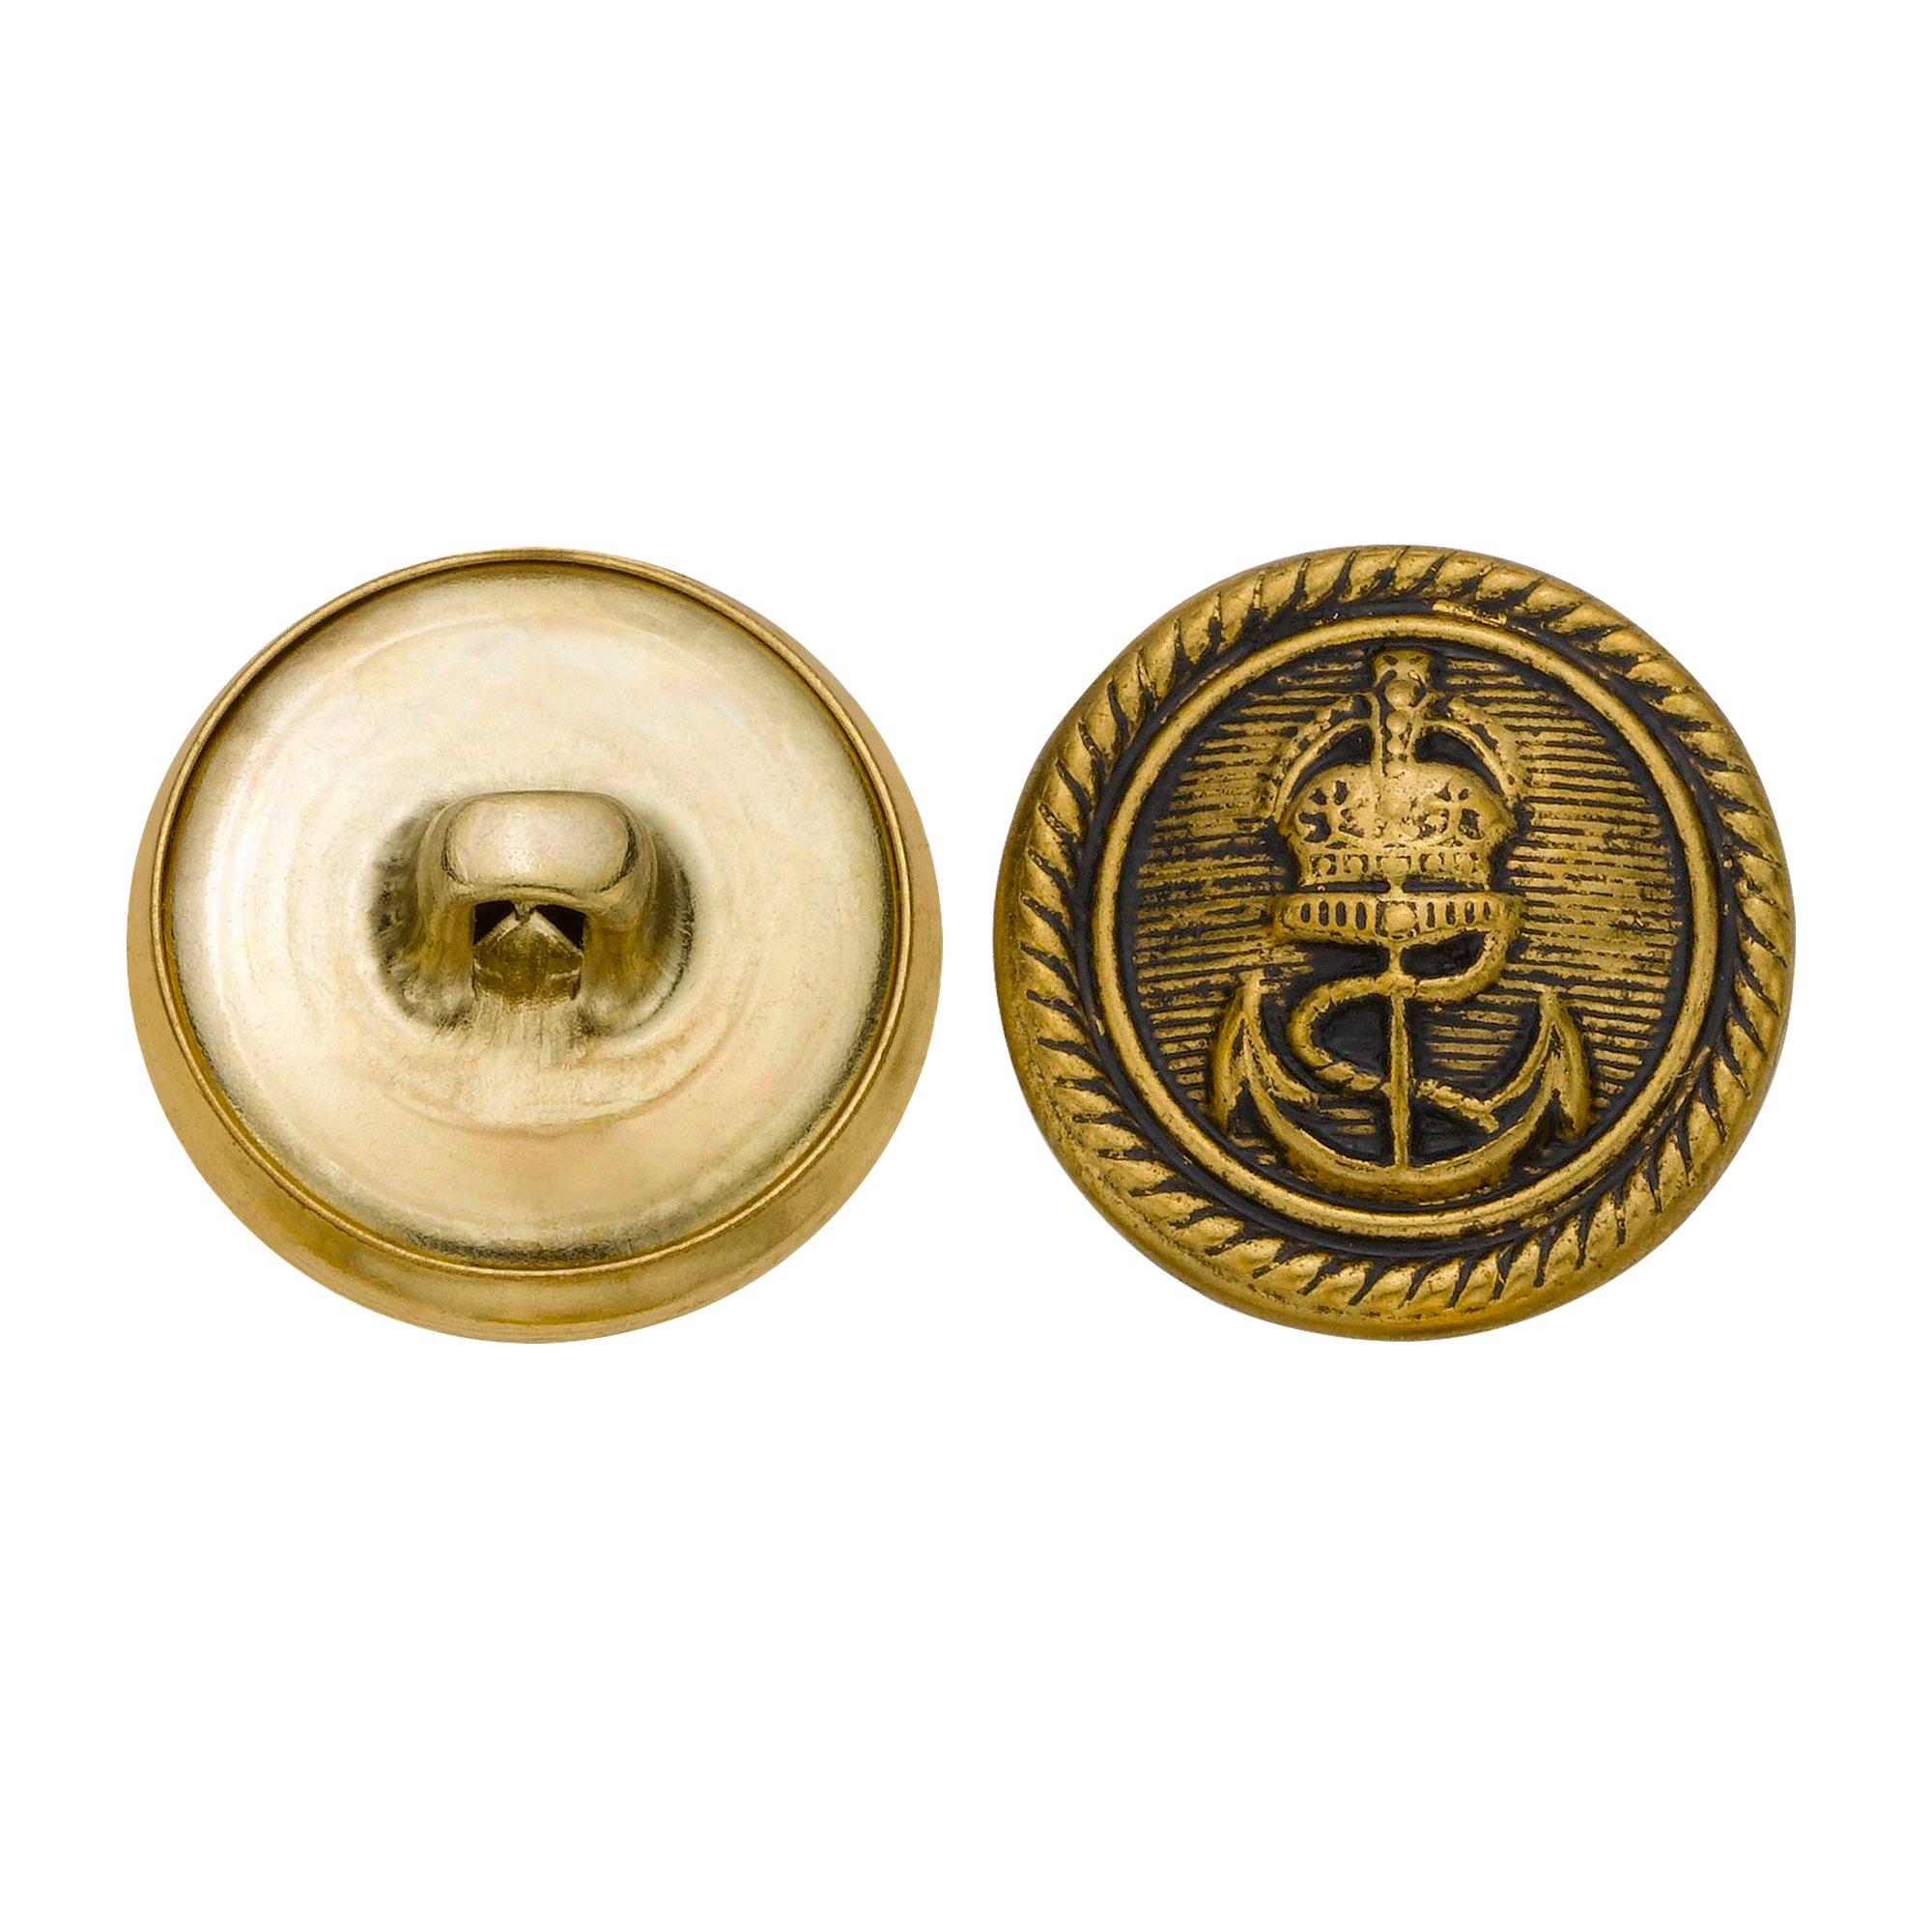 C&C Metal Products 5269 Royal Anchor Metal Button, Size 30 Ligne, Antique Gold, 36-Pack